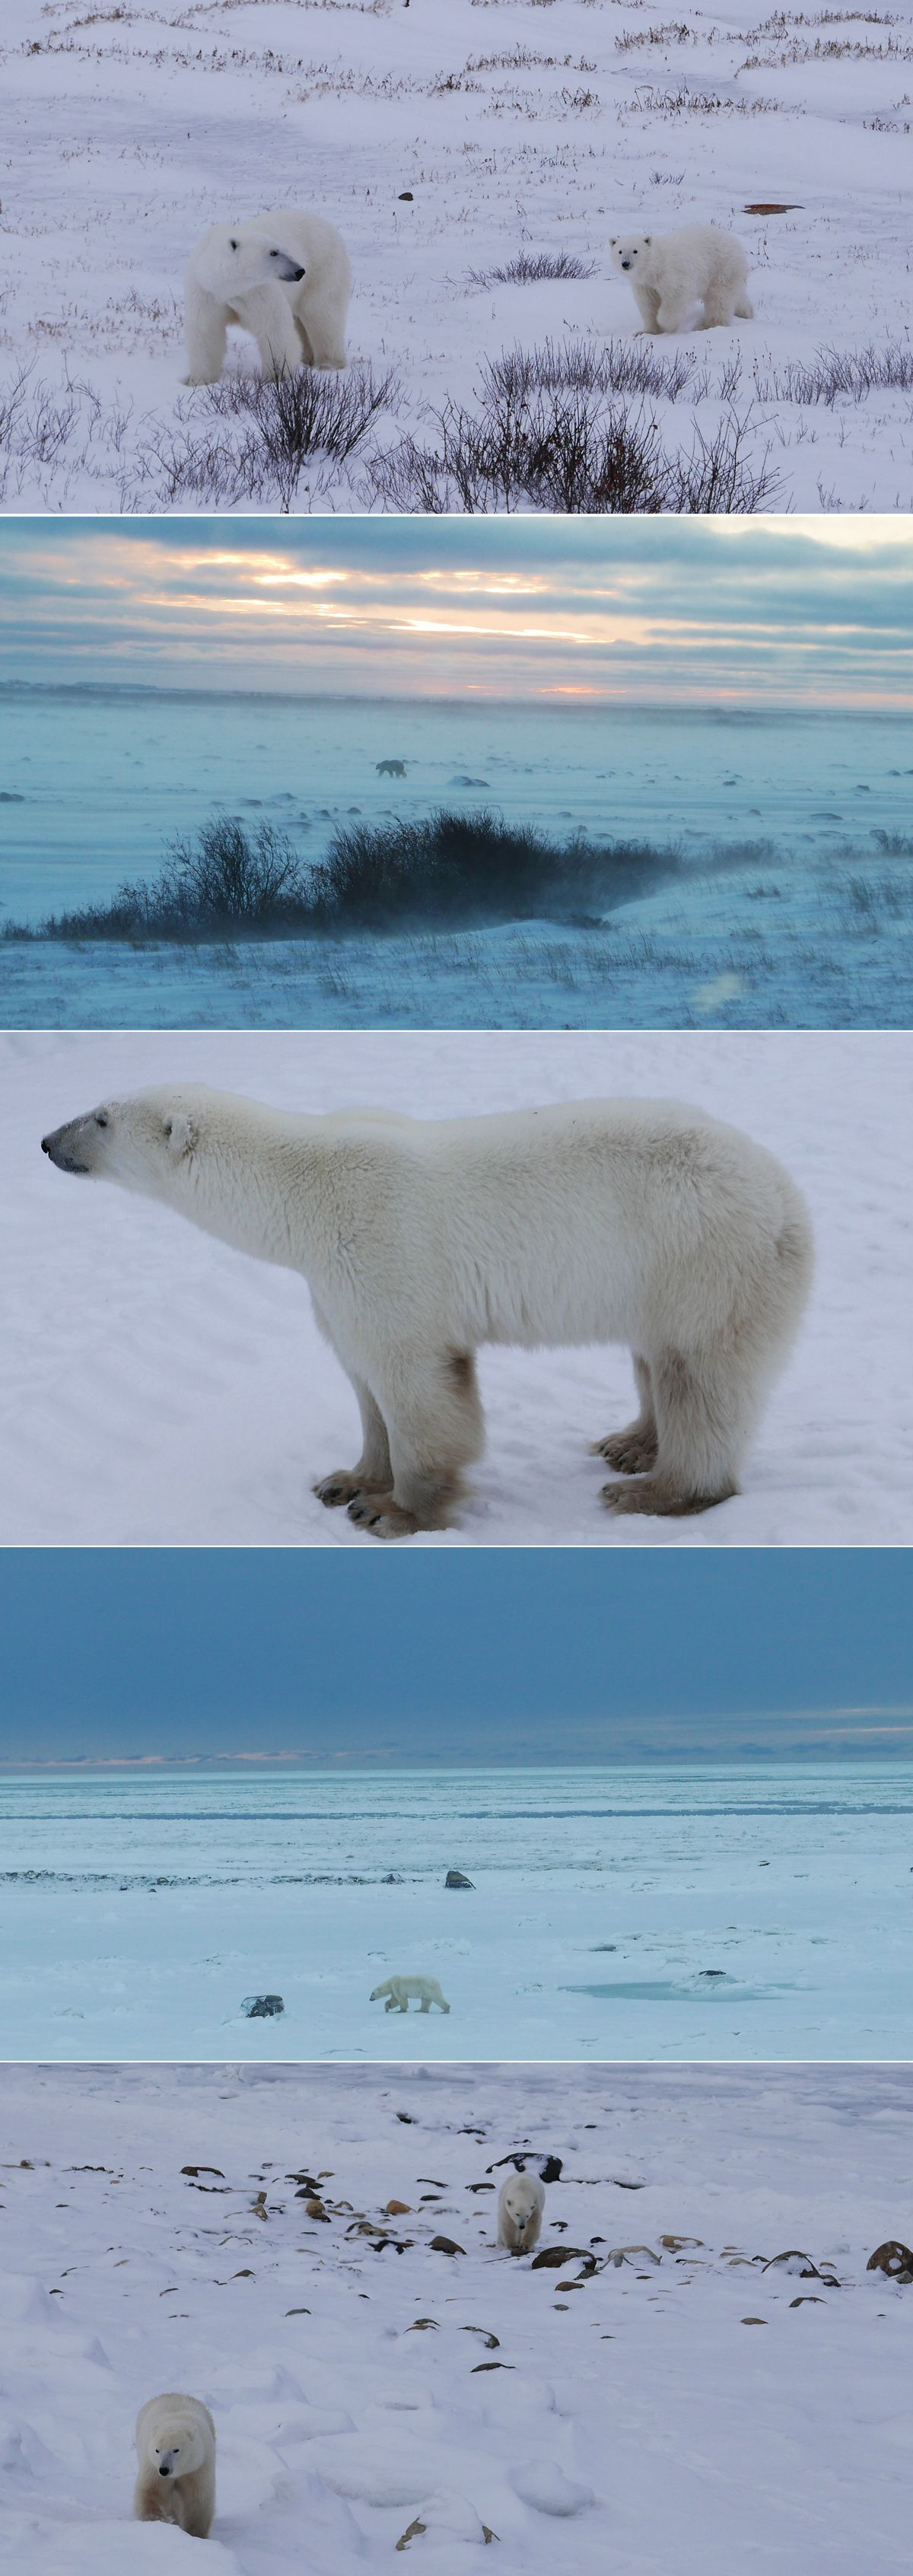 Climate Change Makes Polar Bears Work Harder to Survive